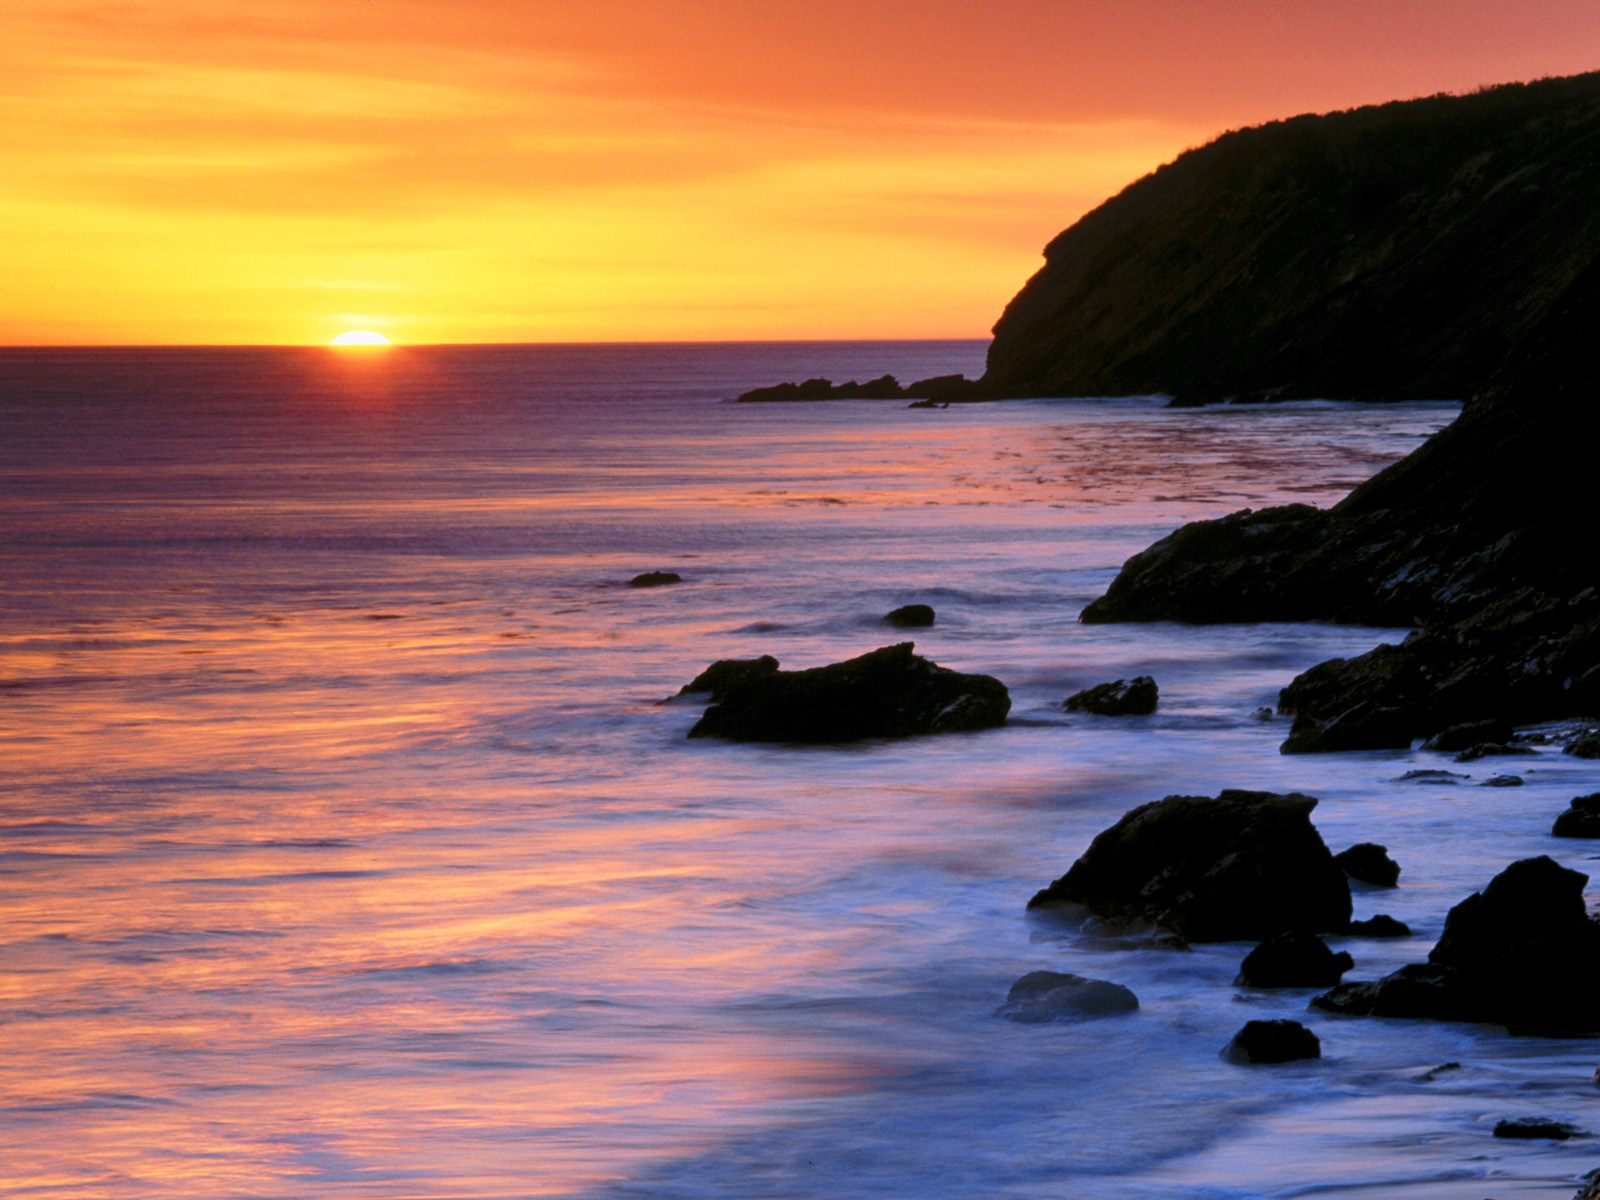 Sunset Desktop Backgrounds and Wallpaper   Pacific Sunset Gaviota 1600x1200